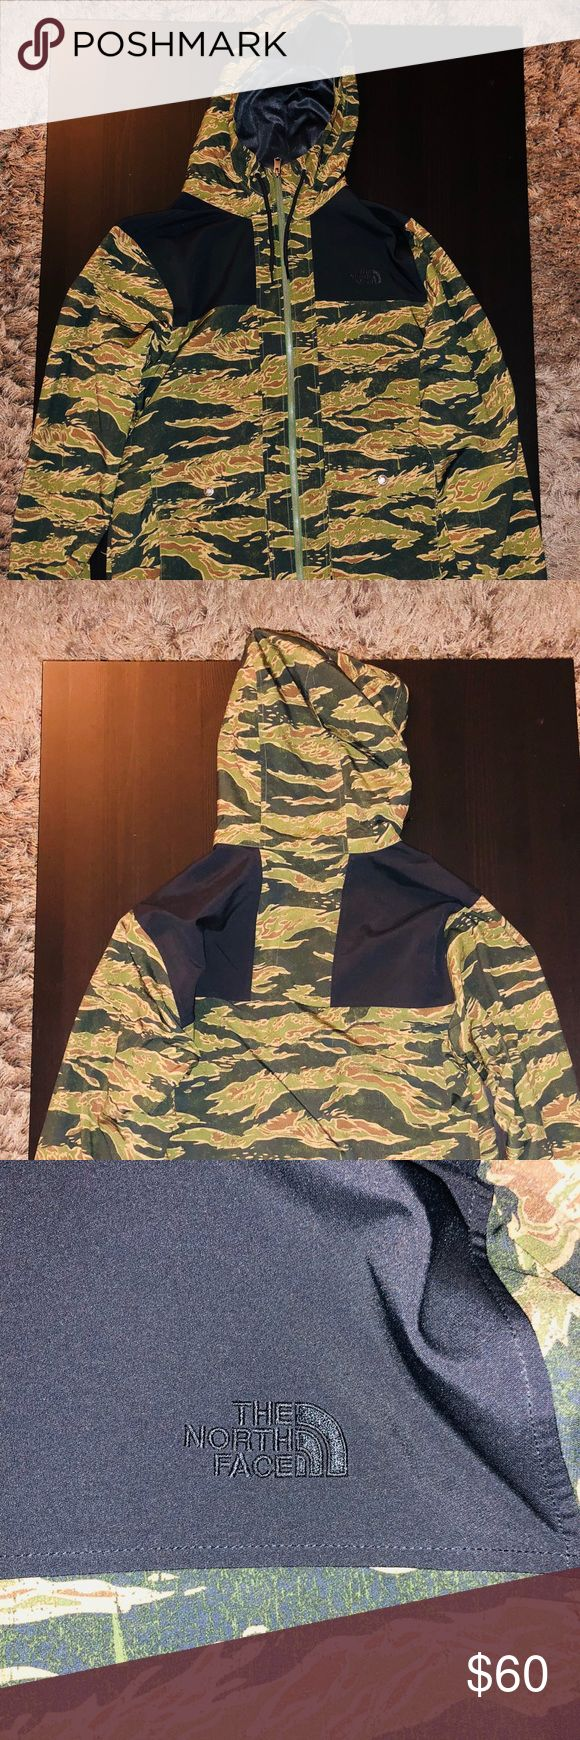 """North Face Mountain Camo Jacket North Face Mountain Camo Jacket  Sizzle: Medium Retail: $140  Authentic North Face Metro Mountain Camo Jacket with hood and black accents and white fleece lining.  Gently used and in excellent condition.  99% Polyester Pit to pit: approx. 21.5"""" Shoulder length: approx. 28"""" Sleeve inseam: approx. 23"""" North Face Jackets & Coats Performance Jackets"""